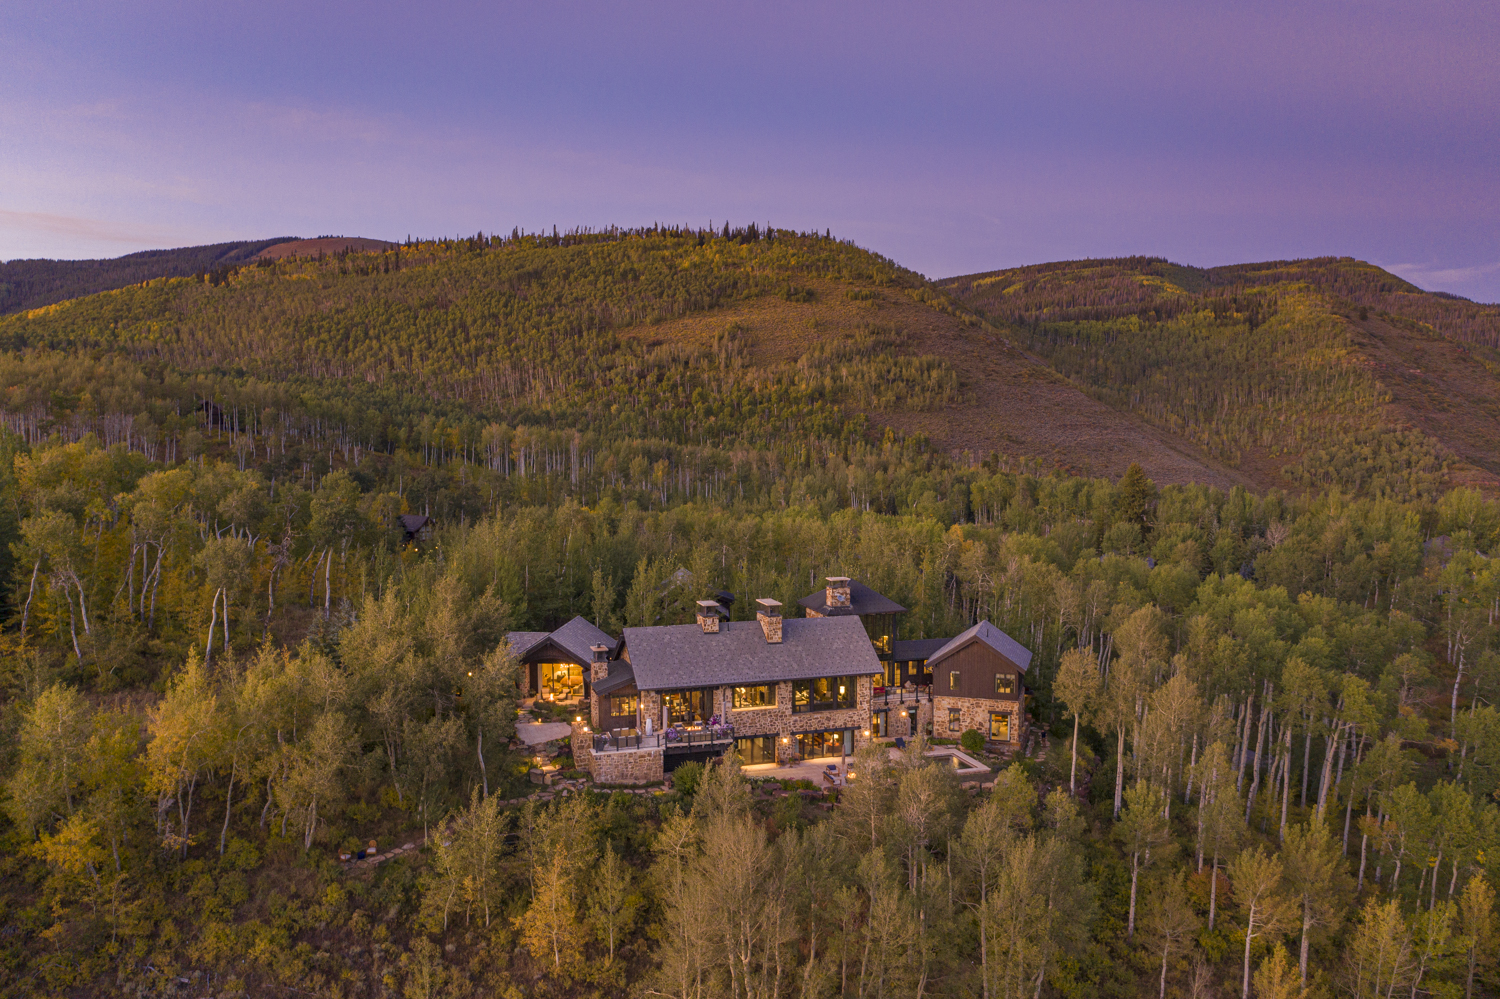 Aerial view of mountain luxury home set in an aspen grove